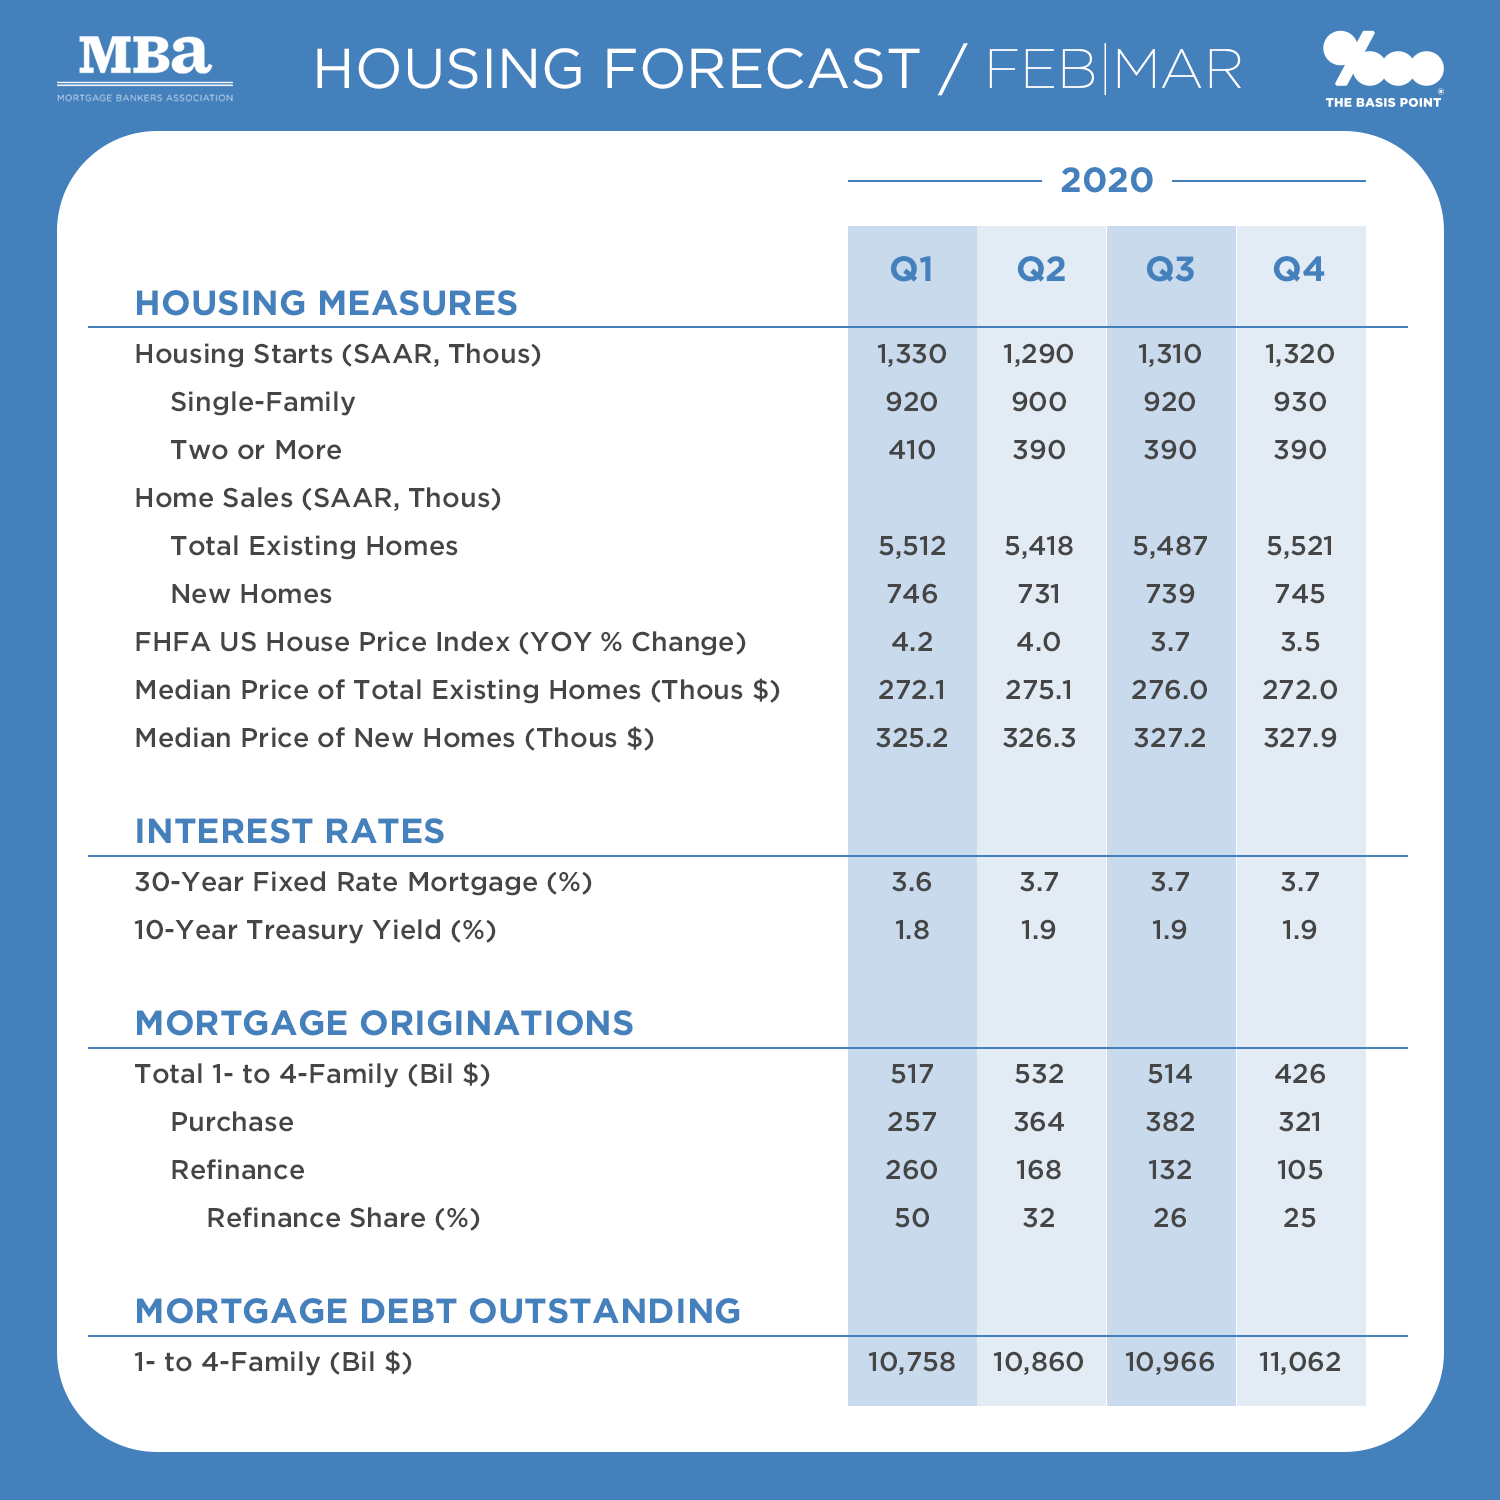 Size of U.S. Mortgage Market for 2020 Q1 to Q4 and Home Sales Estimates from the MBA as of February - The Basis Point